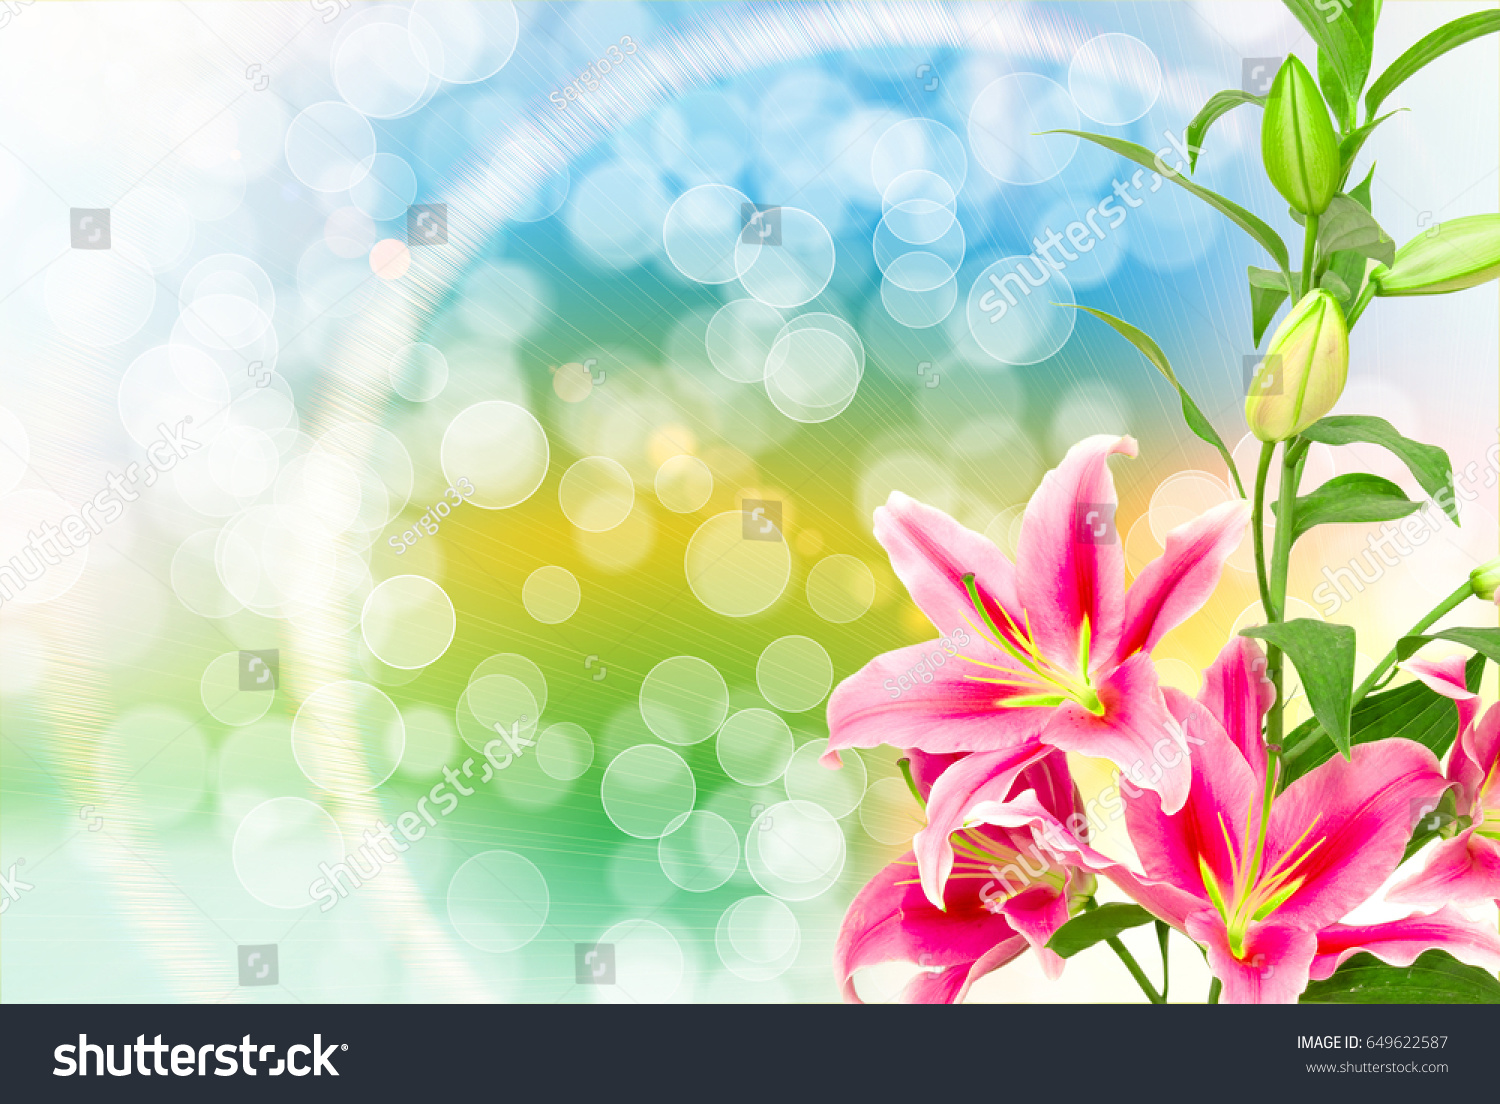 Close up of beautiful pink lilies flowers ez canvas id 649622587 izmirmasajfo